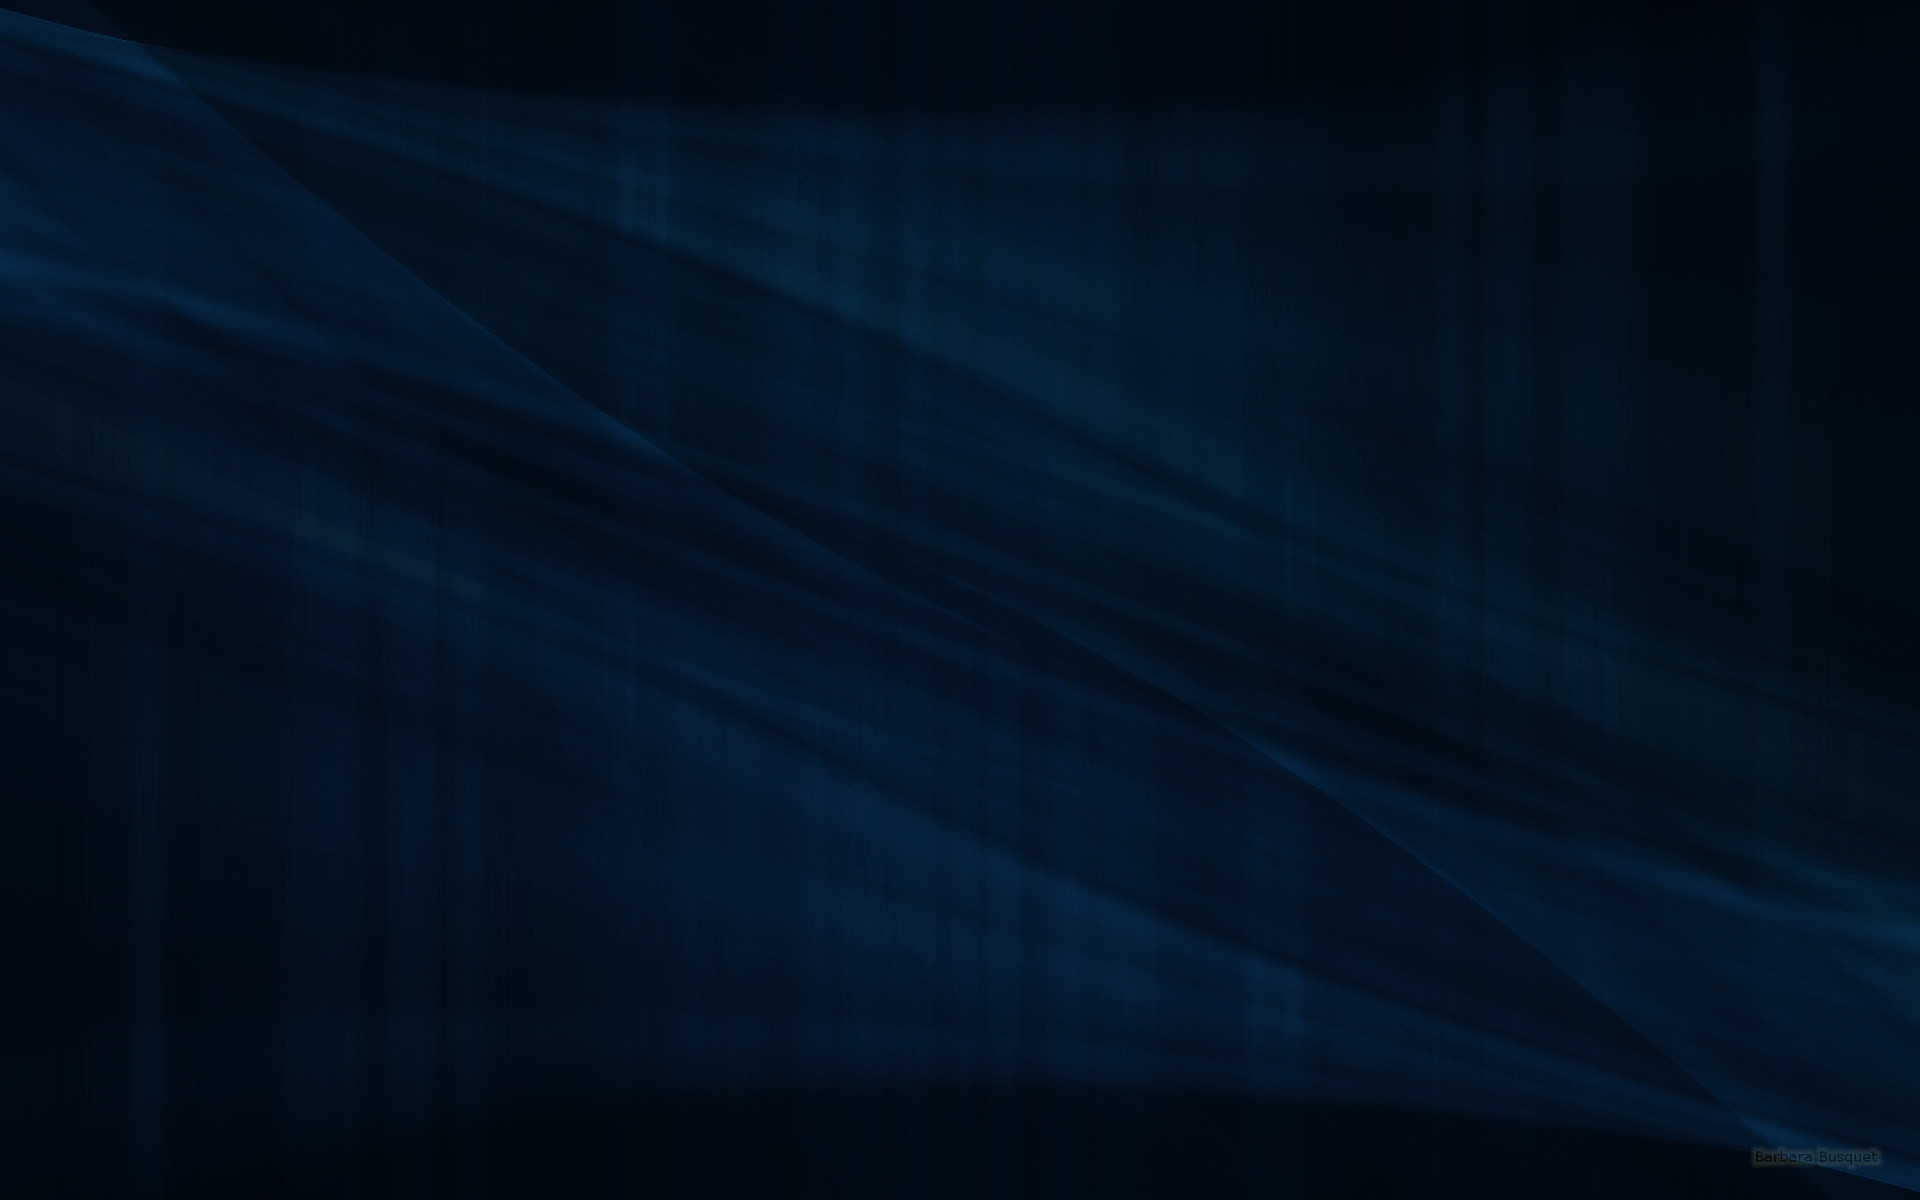 Dark Blue Abstract Wallpaper (69+ pictures)